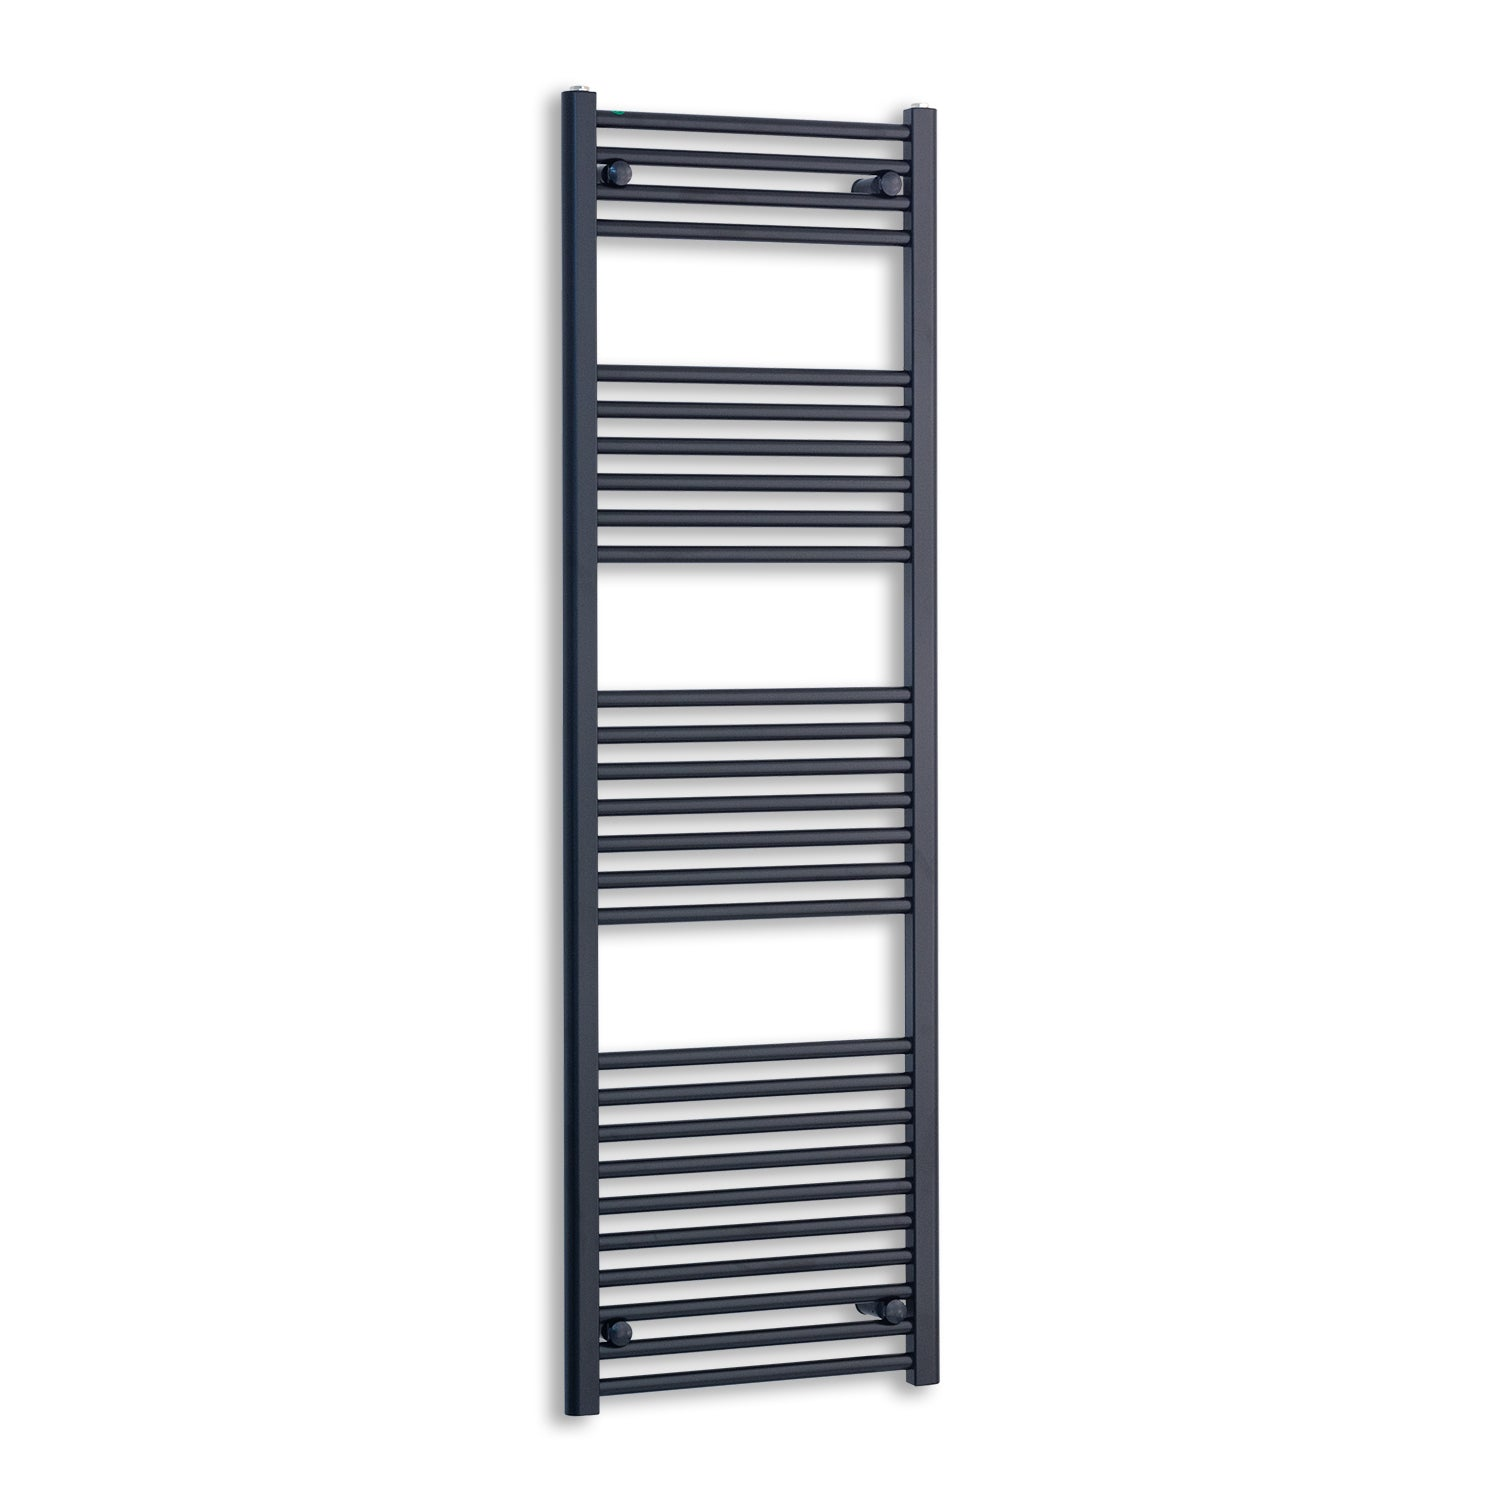 500mm Wide 1600mm High Black Towel Rail Radiator